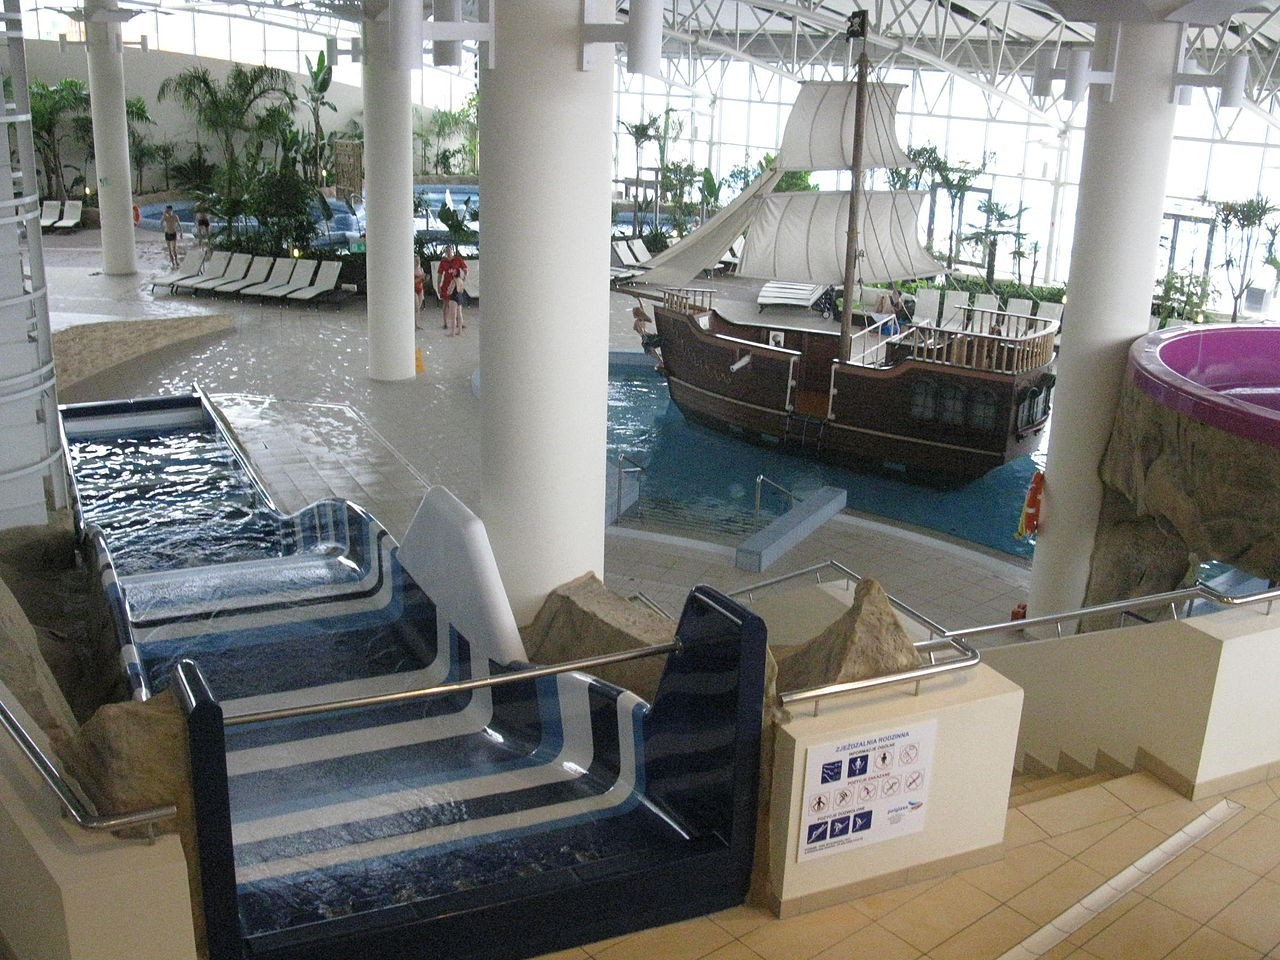 Thermal Resorts in Poland